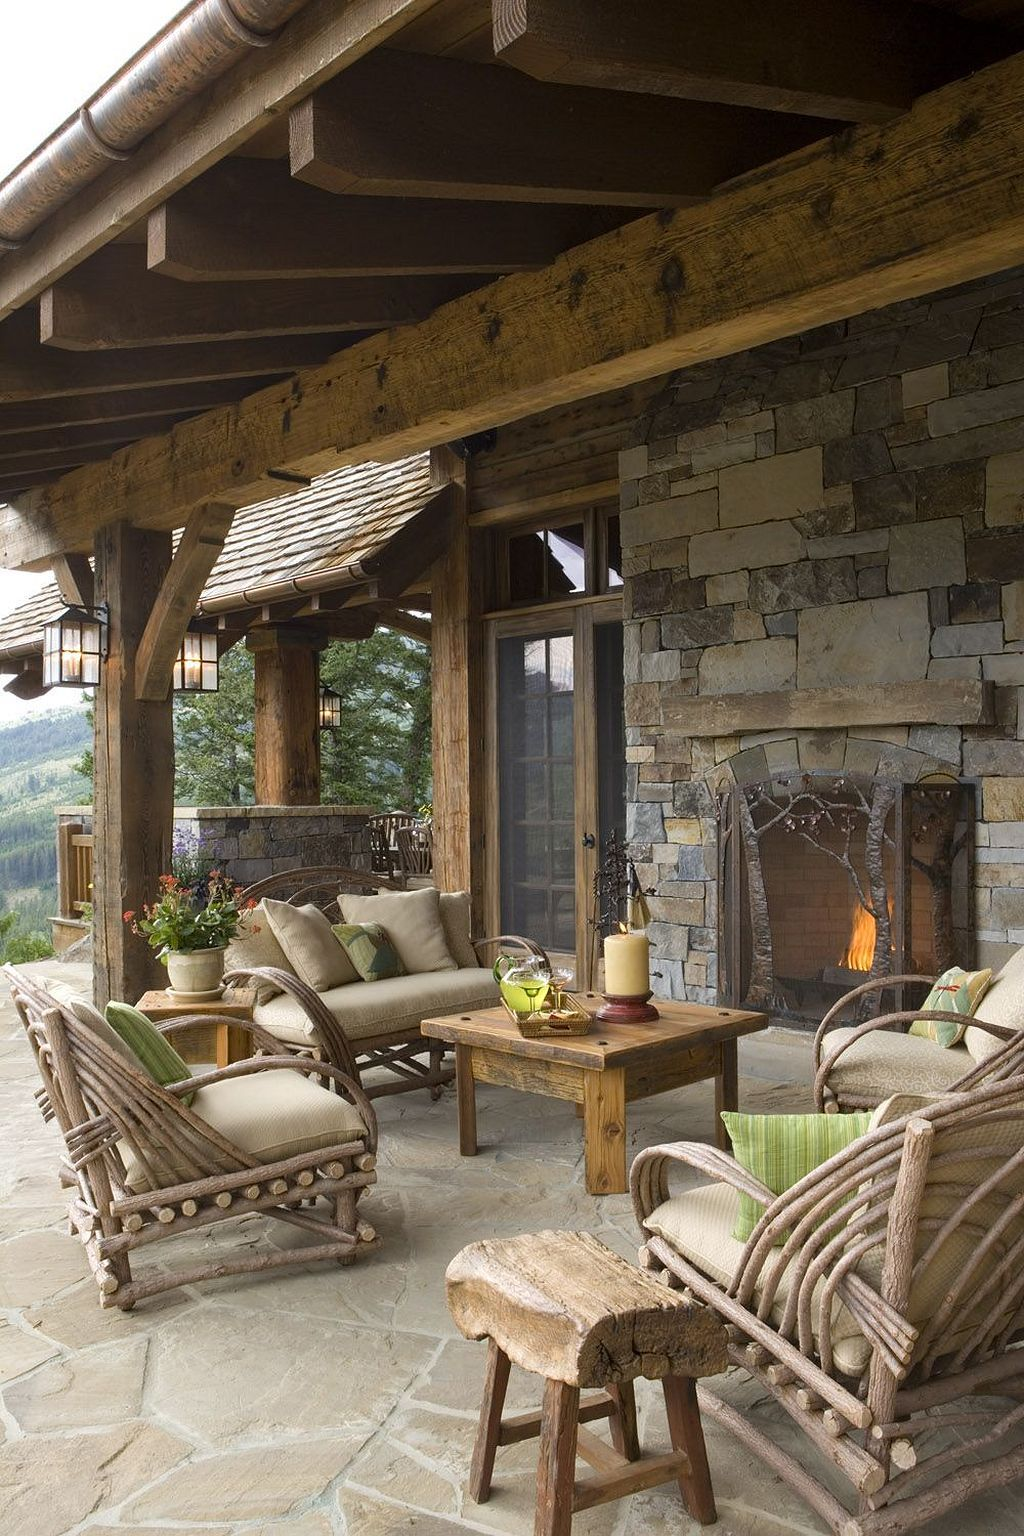 10 Rustic Outdoor Fireplace Designs For Your Barbecue Party Outdoor Living Space Rustic Patio Outdoor Living #outdoor #living #room #with #fireplace